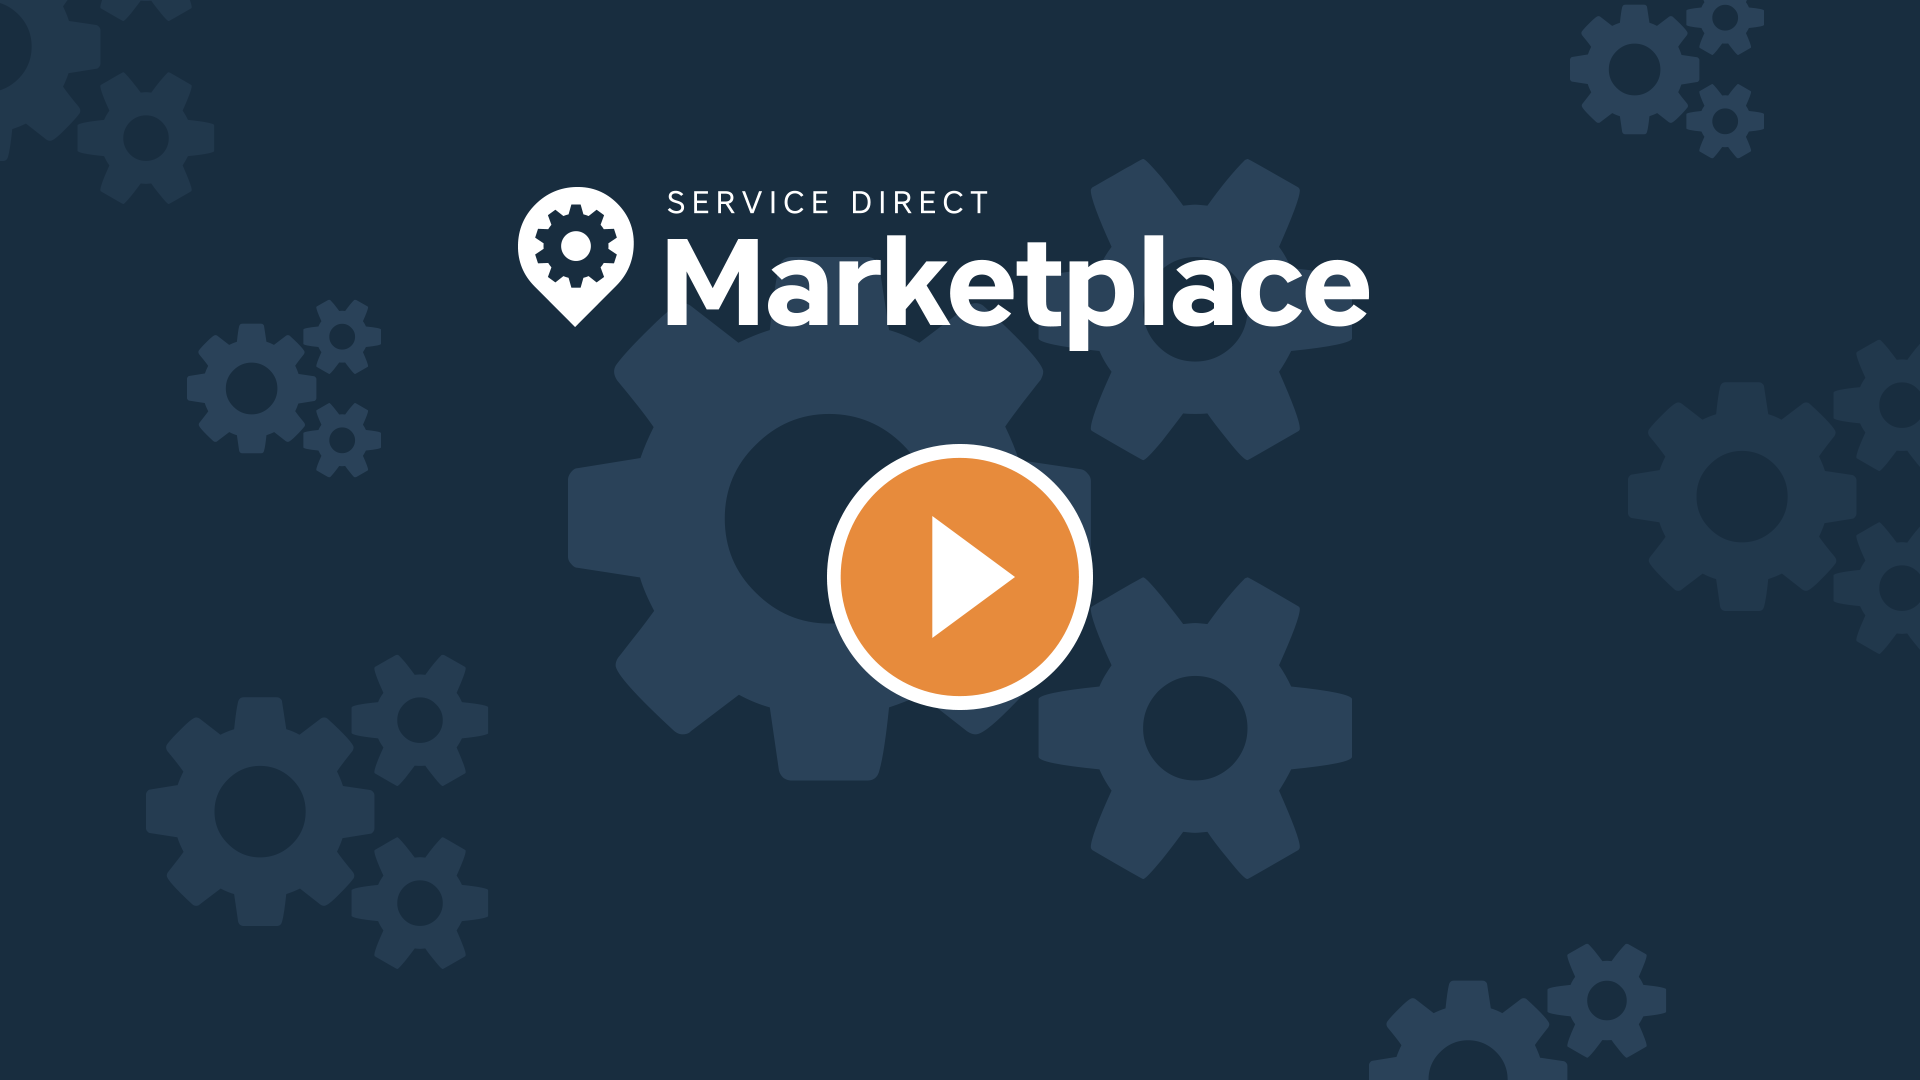 Service Direct Marketplace (Click to Play)